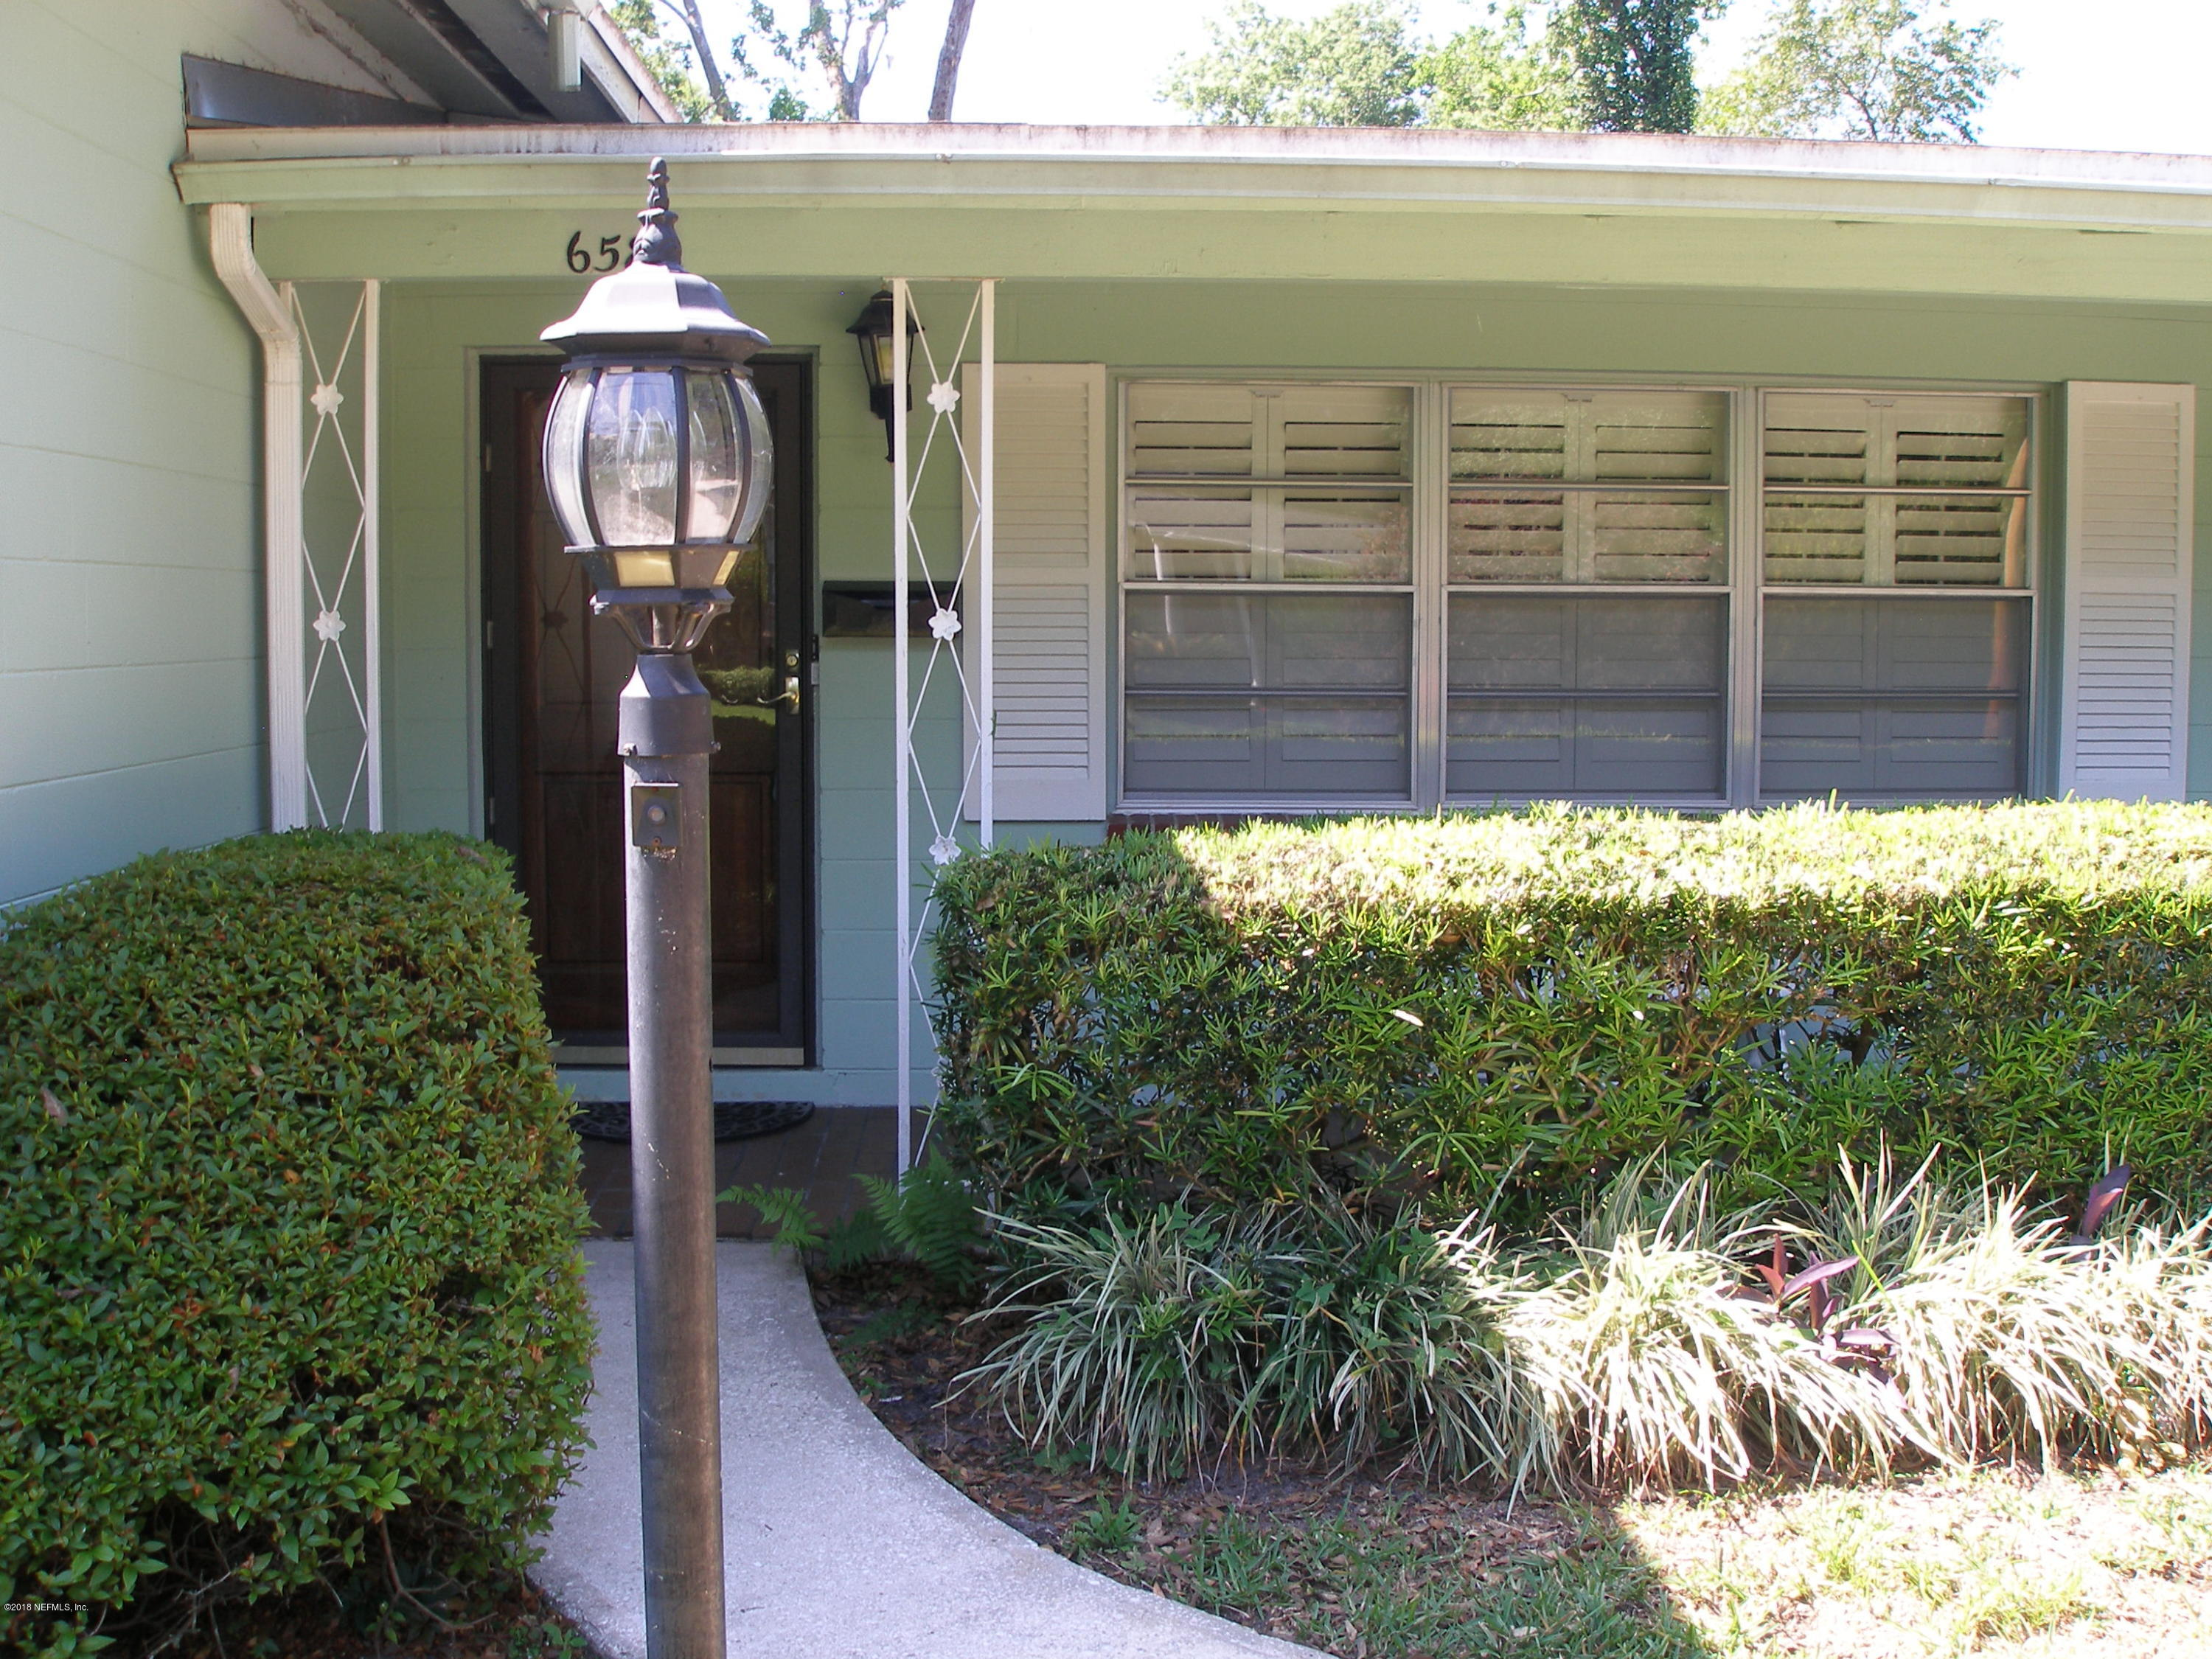 6580 ALBICORE, JACKSONVILLE, FLORIDA 32244, 3 Bedrooms Bedrooms, ,2 BathroomsBathrooms,Residential - single family,For sale,ALBICORE,933938